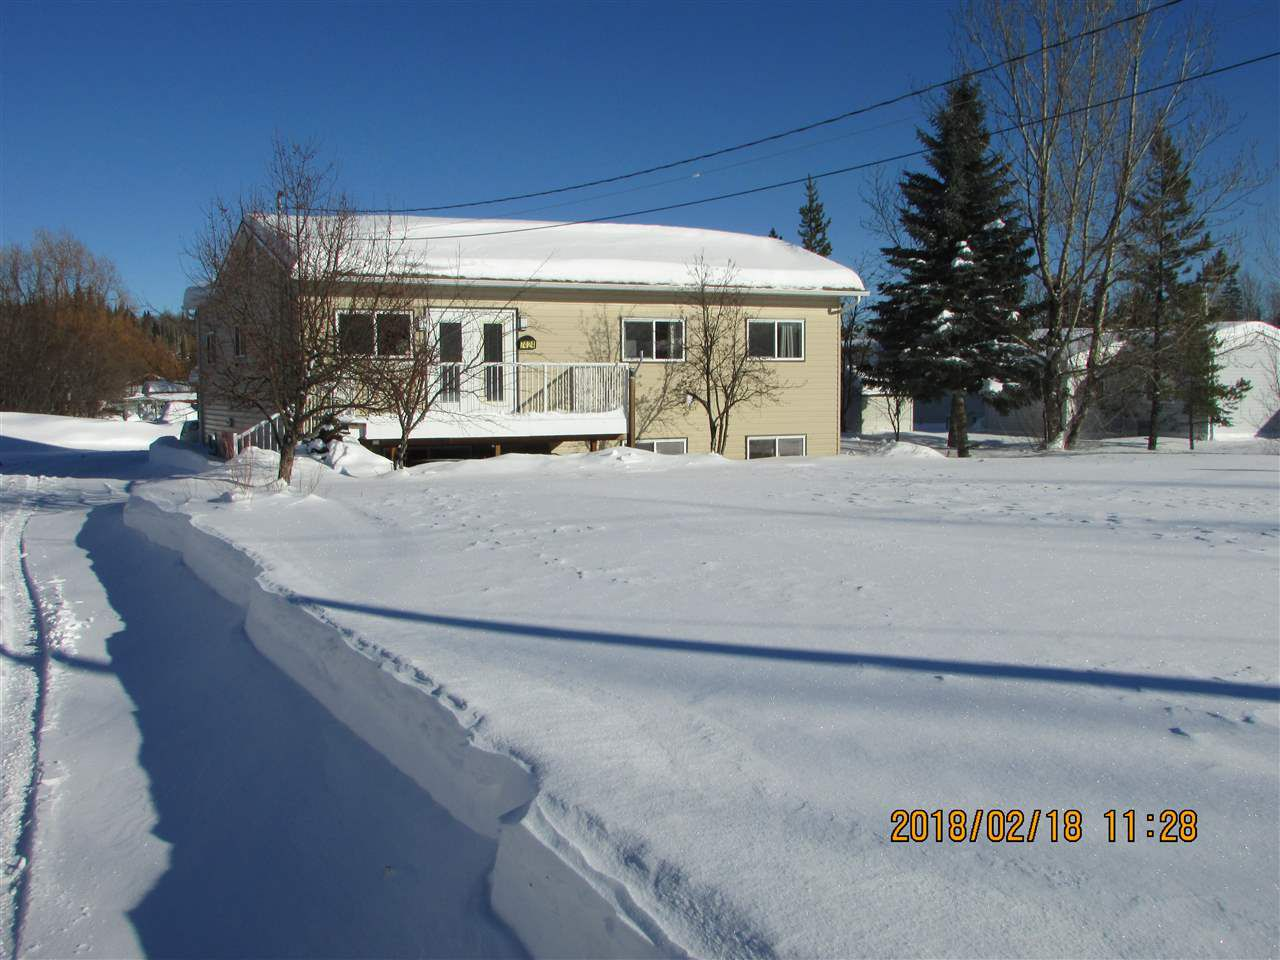 Main Photo: 7424 GISCOME Road in Prince George: North Blackburn House for sale (PG City South East (Zone 75))  : MLS®# R2241089